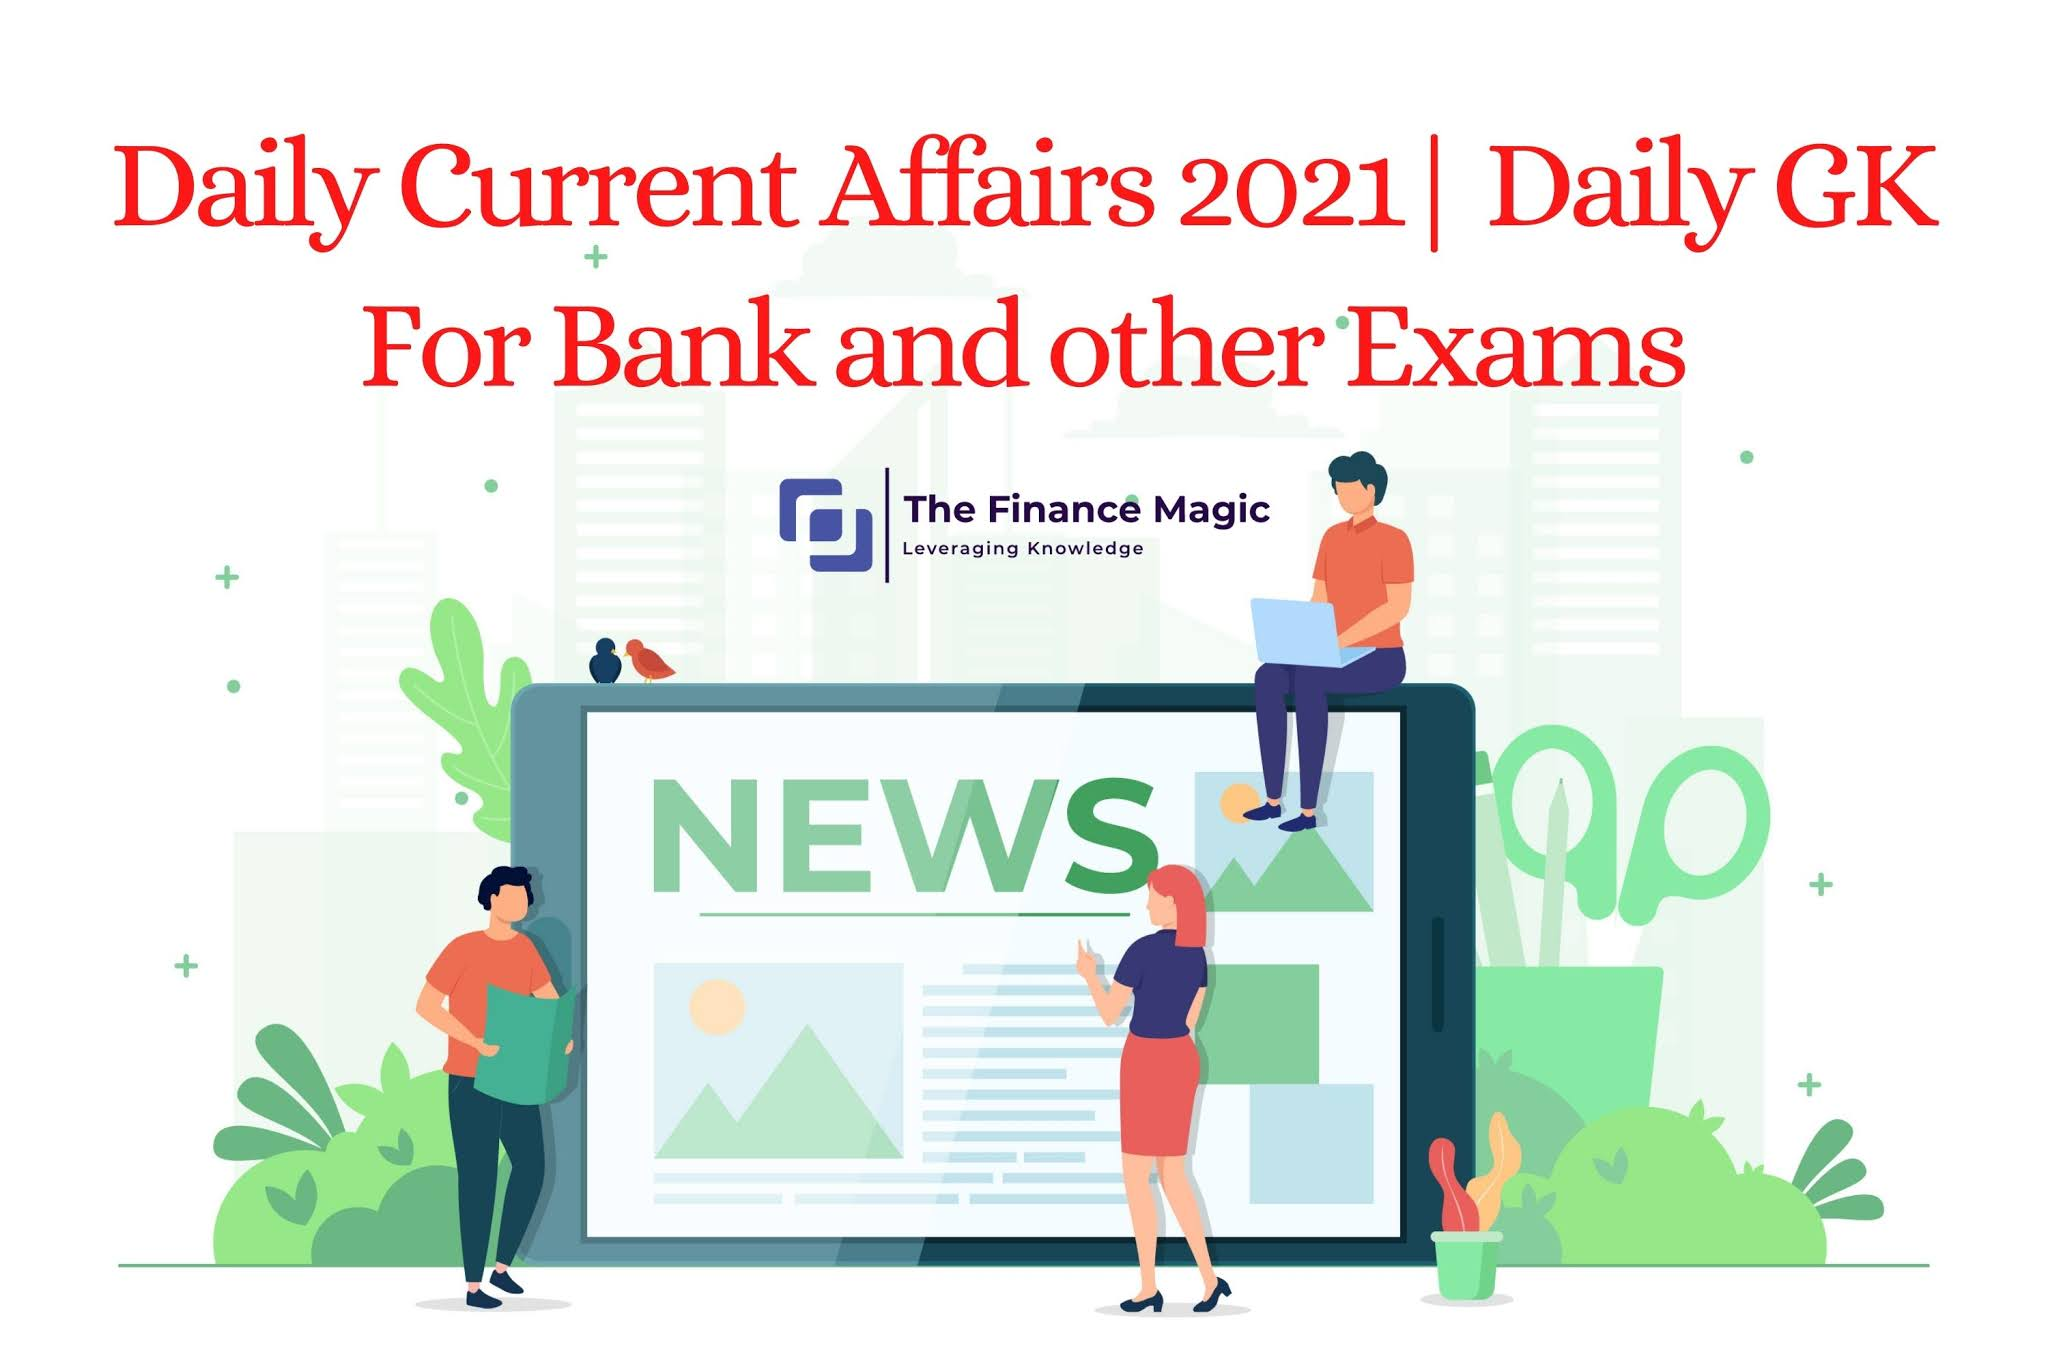 7th April 2021 | Daily Current Affairs 2021 for Bank Exams | Daily News | Free PDF Download